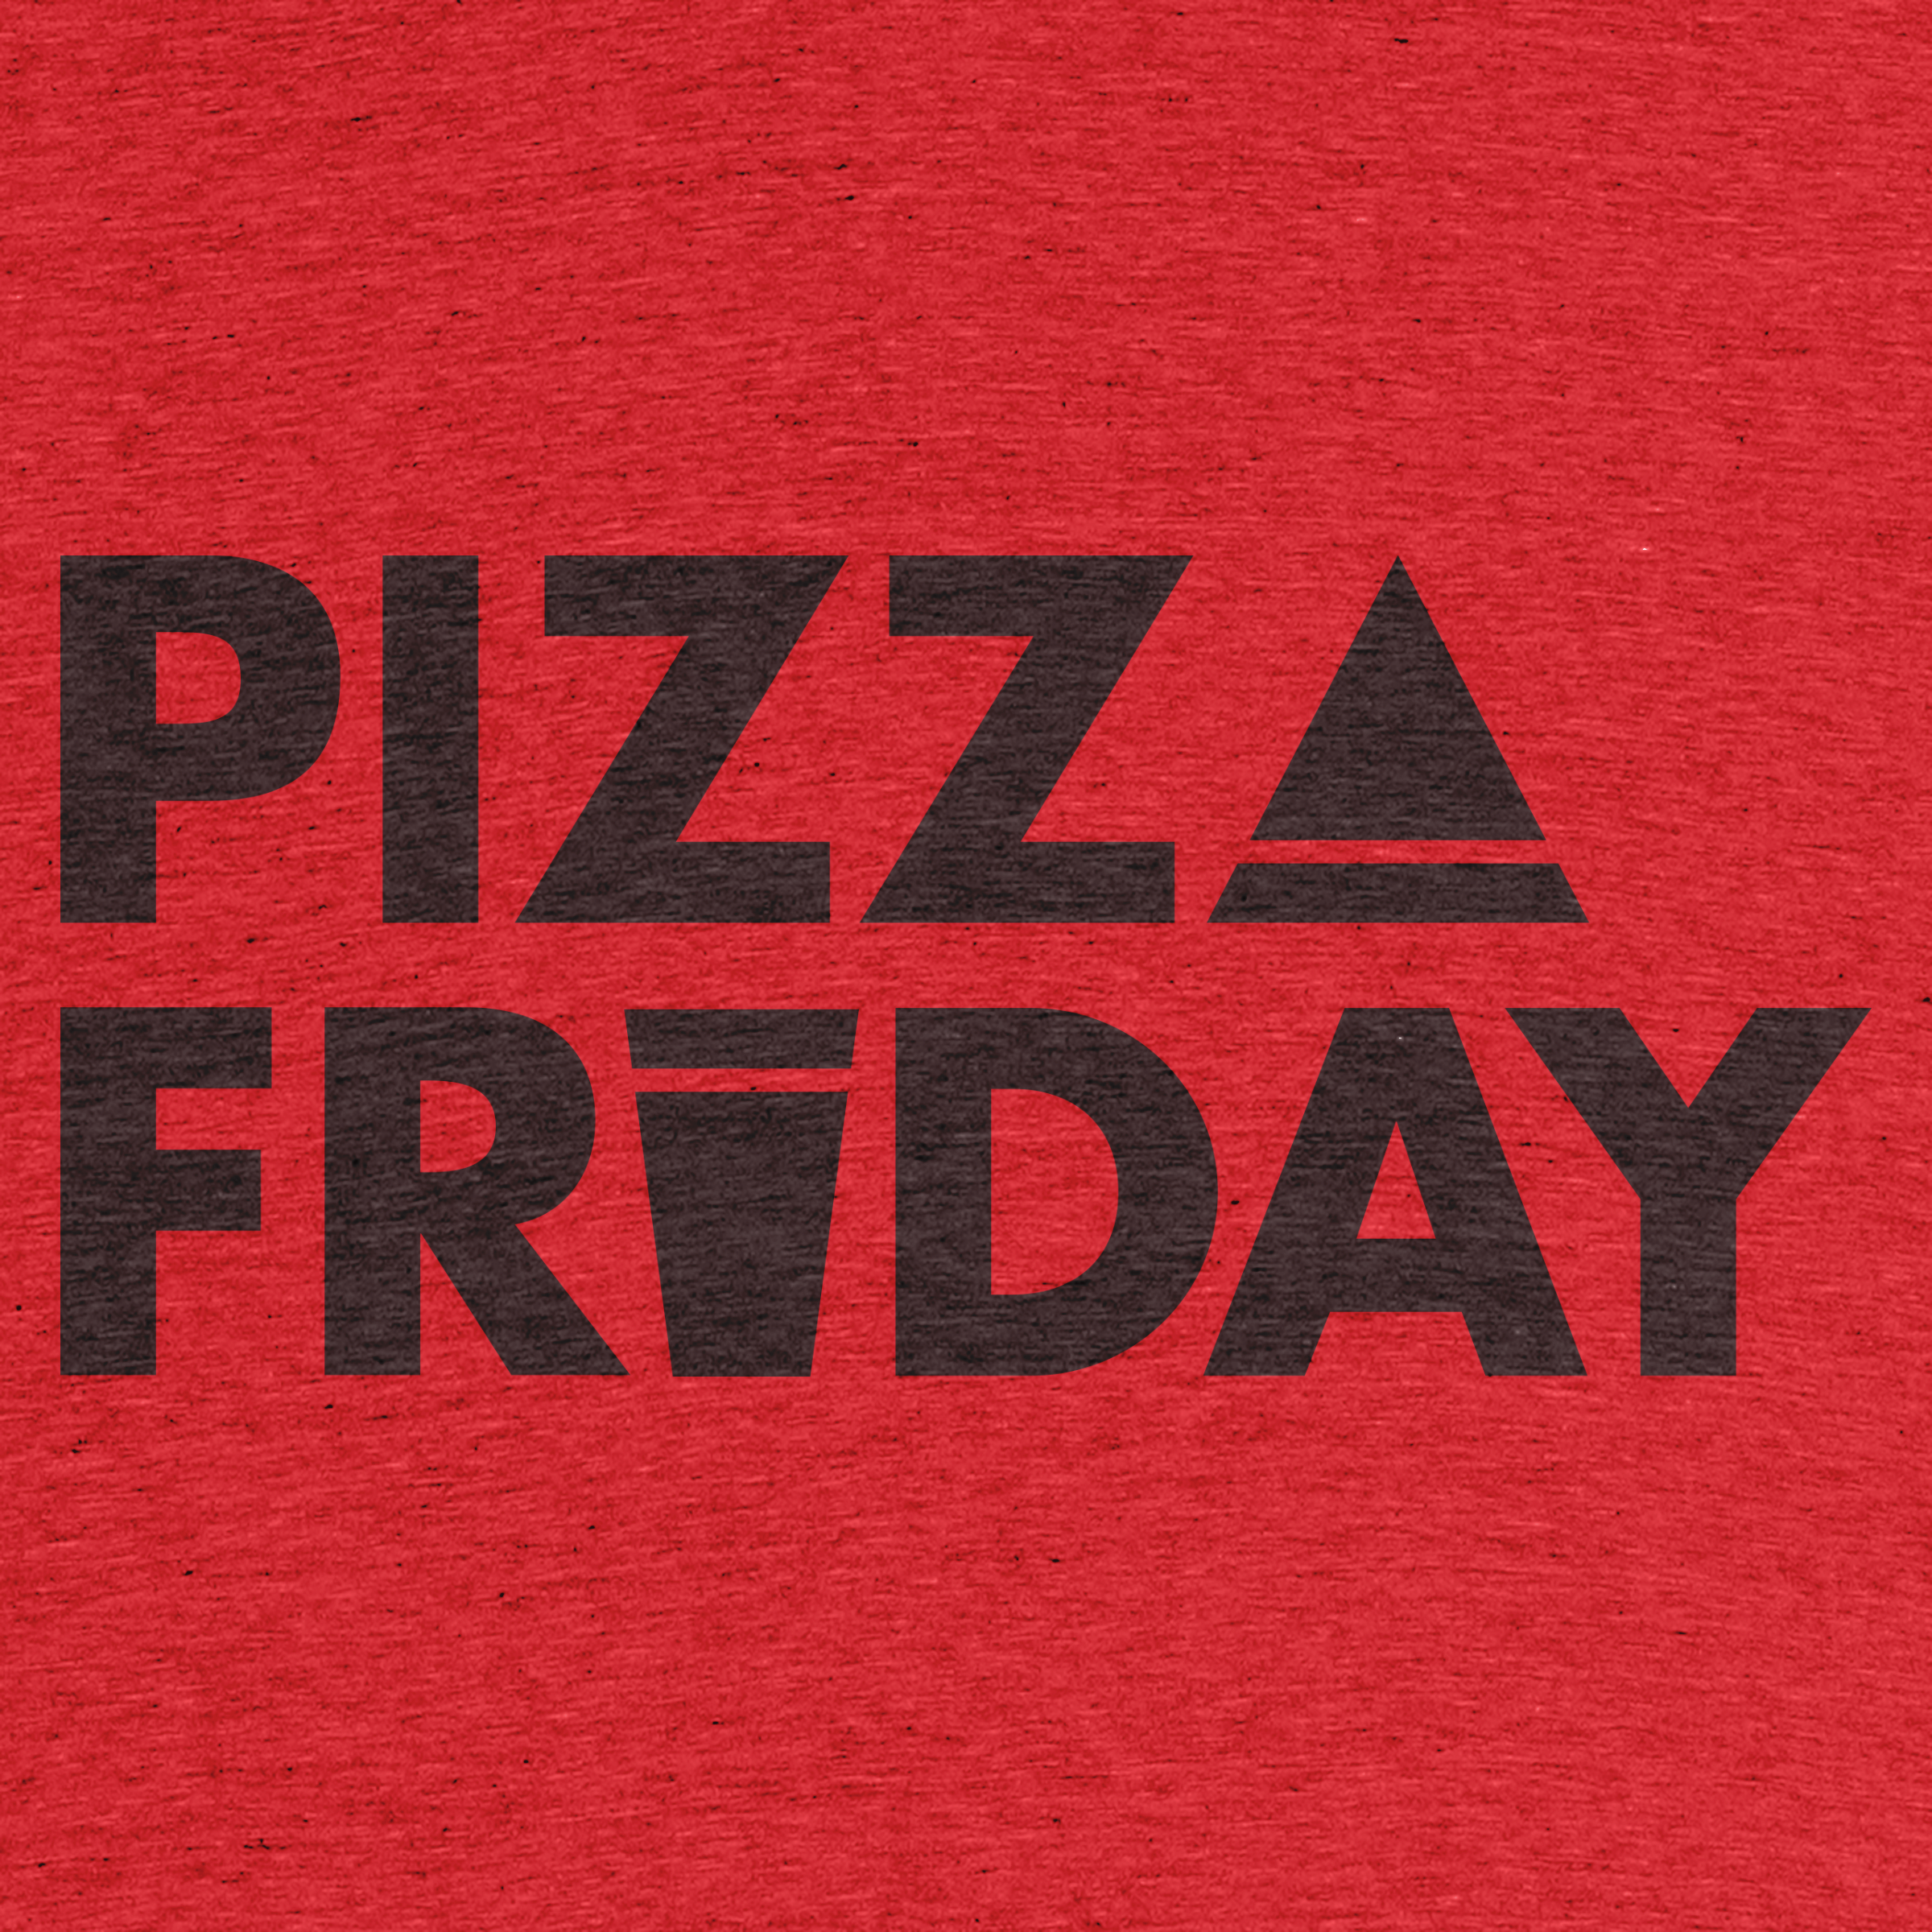 Pizza Friday Detail